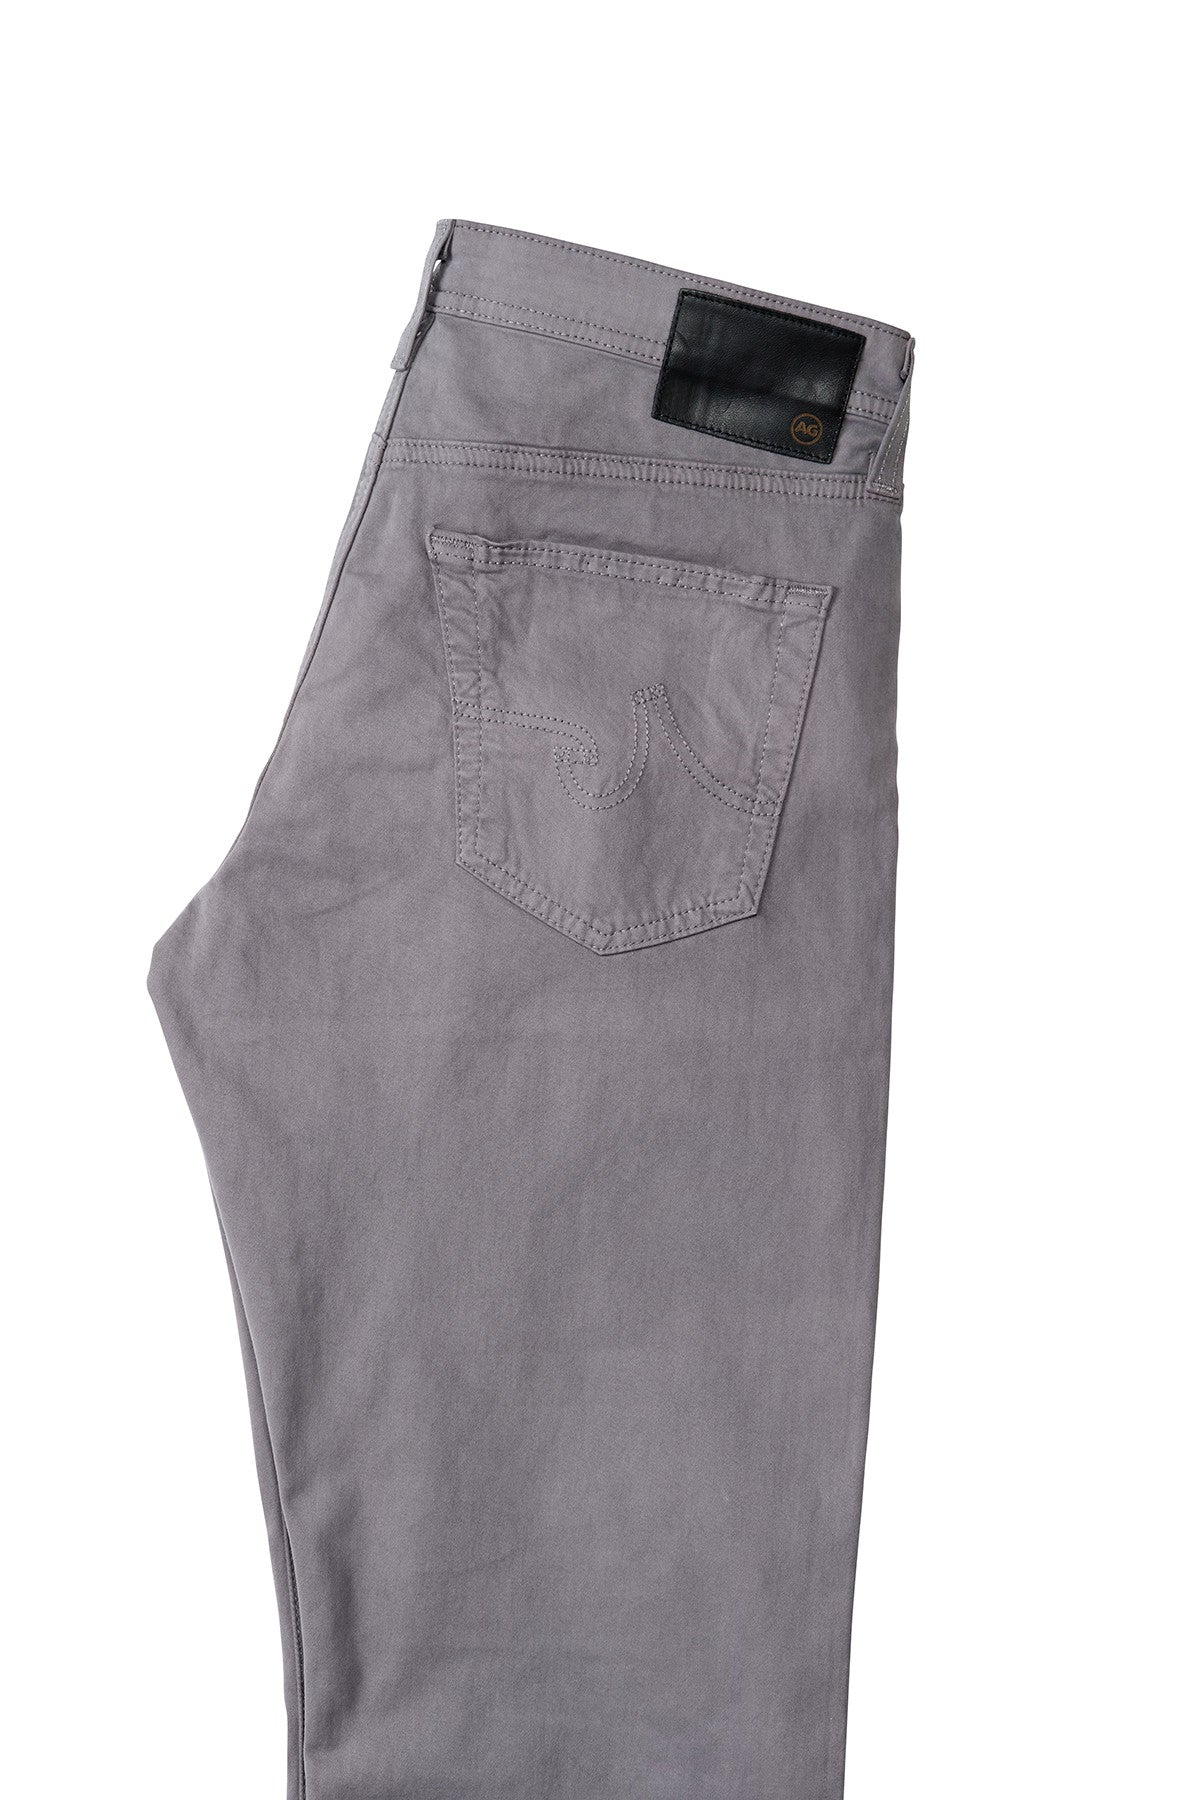 AG 'Protégé' Straight Leg Fit Pants in Sueded Sateen Sulfur Shale